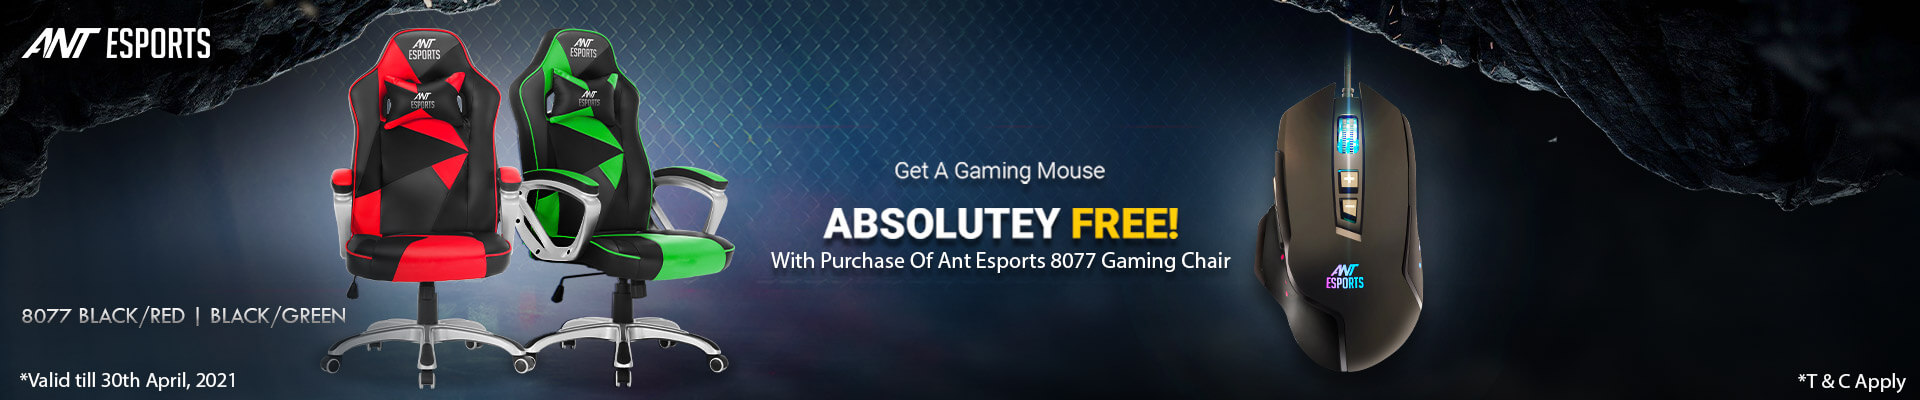 Ant Esports Gaming Chair Offer